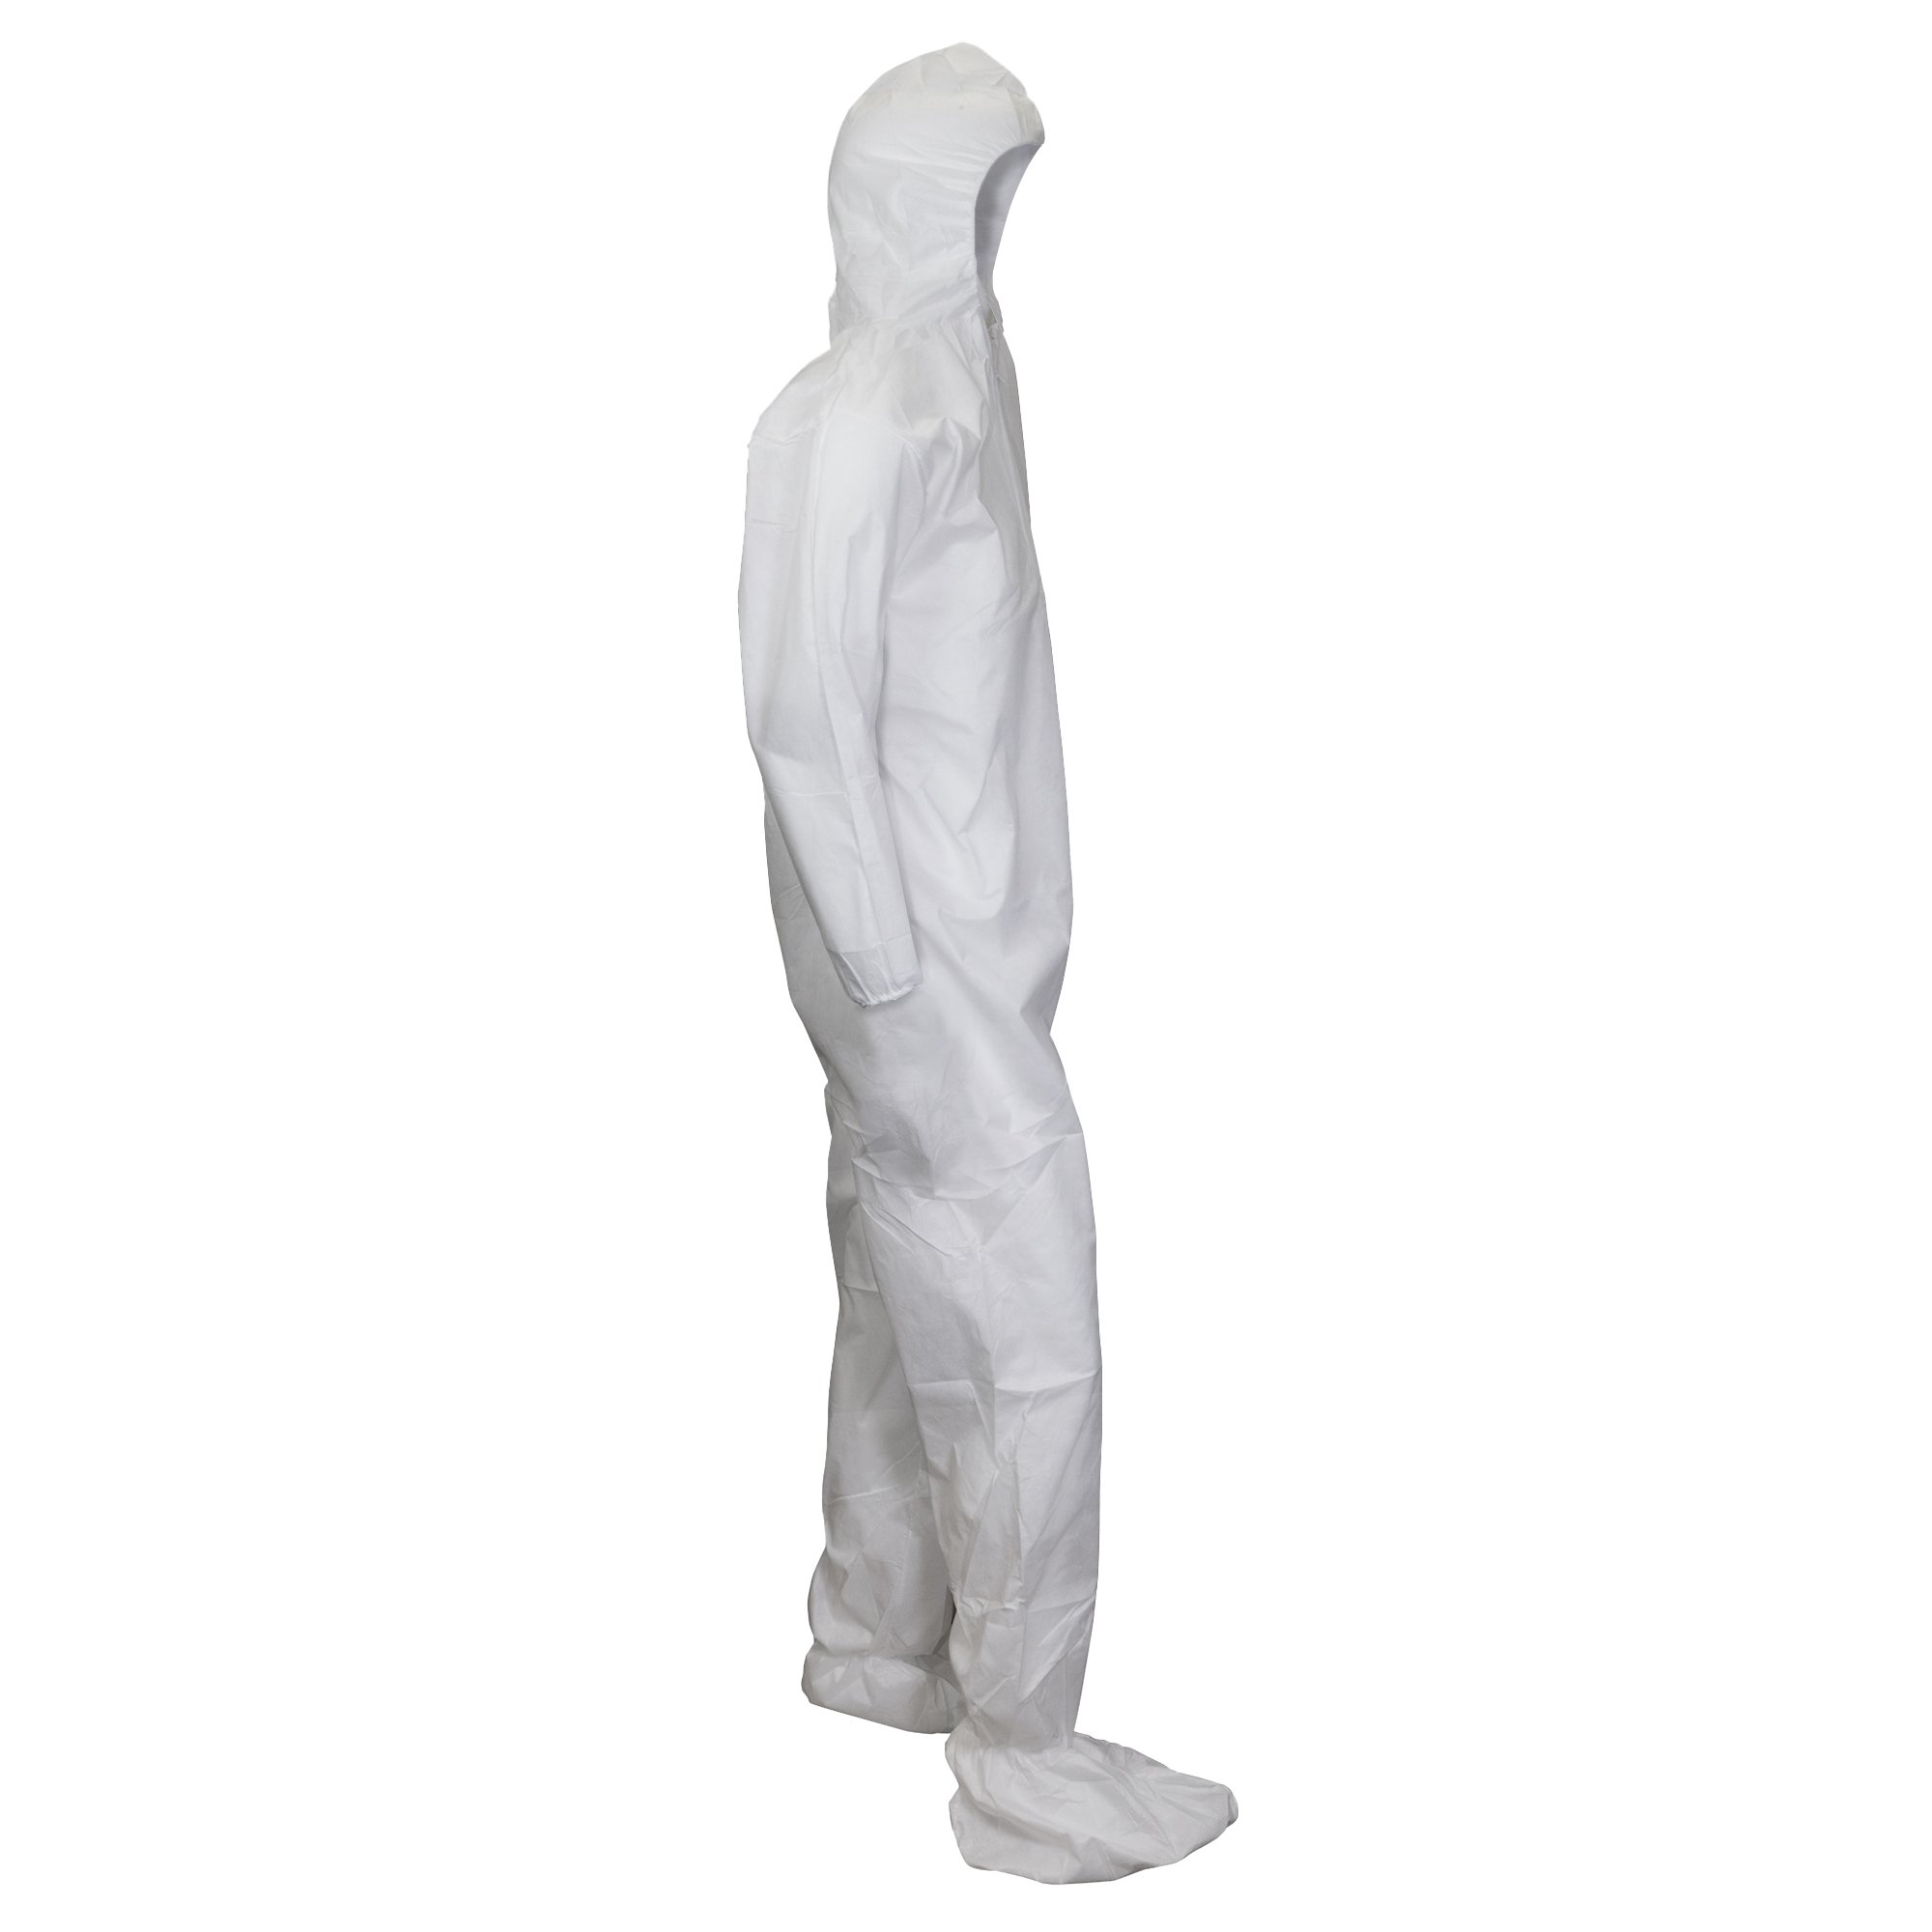 Kleenguard A10 Light Duty Coveralls (10631), Zip Front, Elastic Wrists, Hood, Boots, Breathable Material, White, 2XL, 25 / Case by Kimberly-Clark Professional (Image #2)